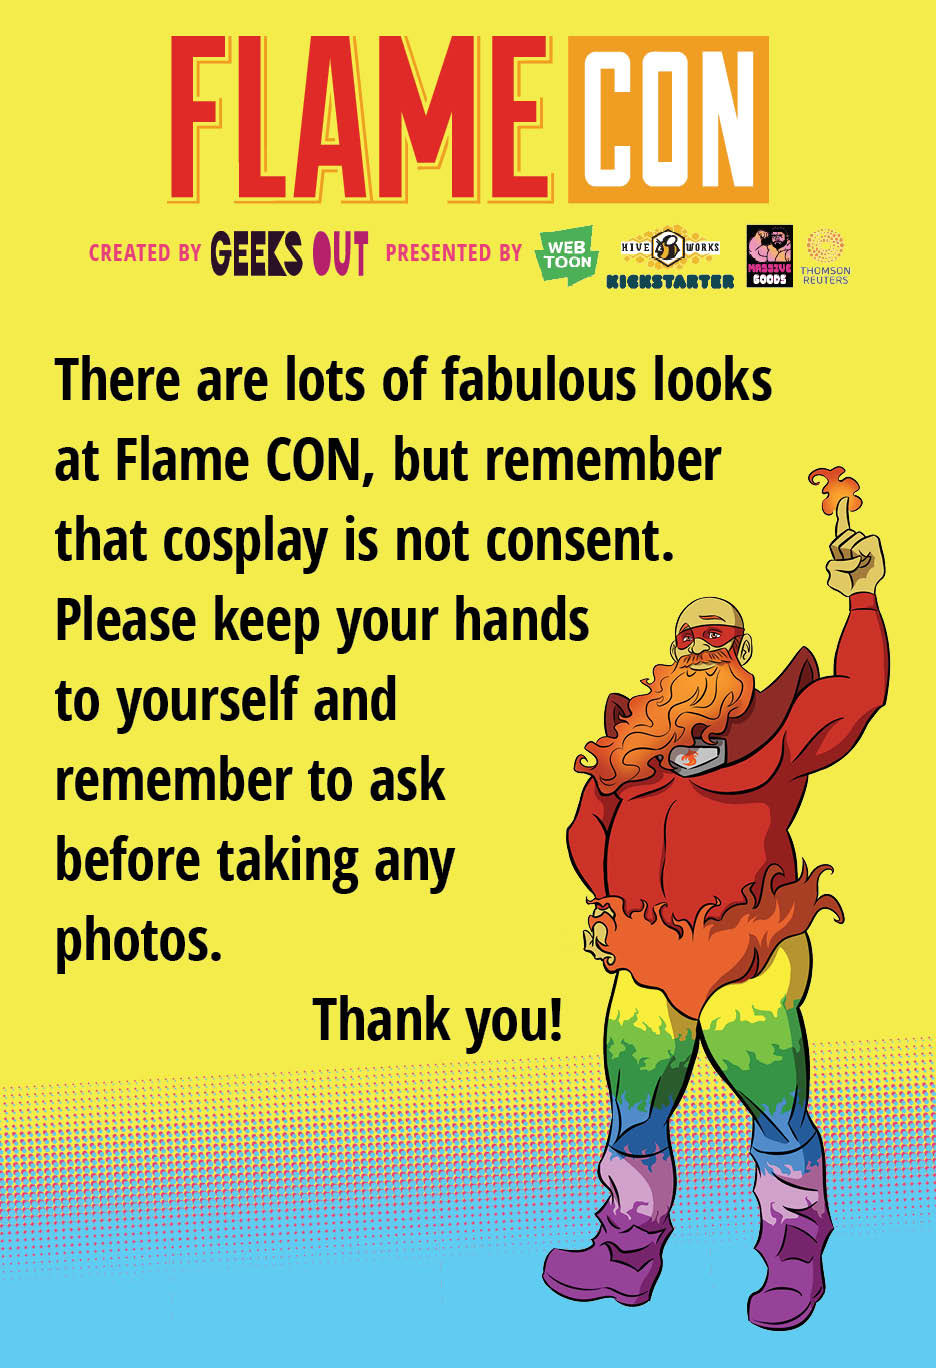 flame-con-cosplay-consent.jpg